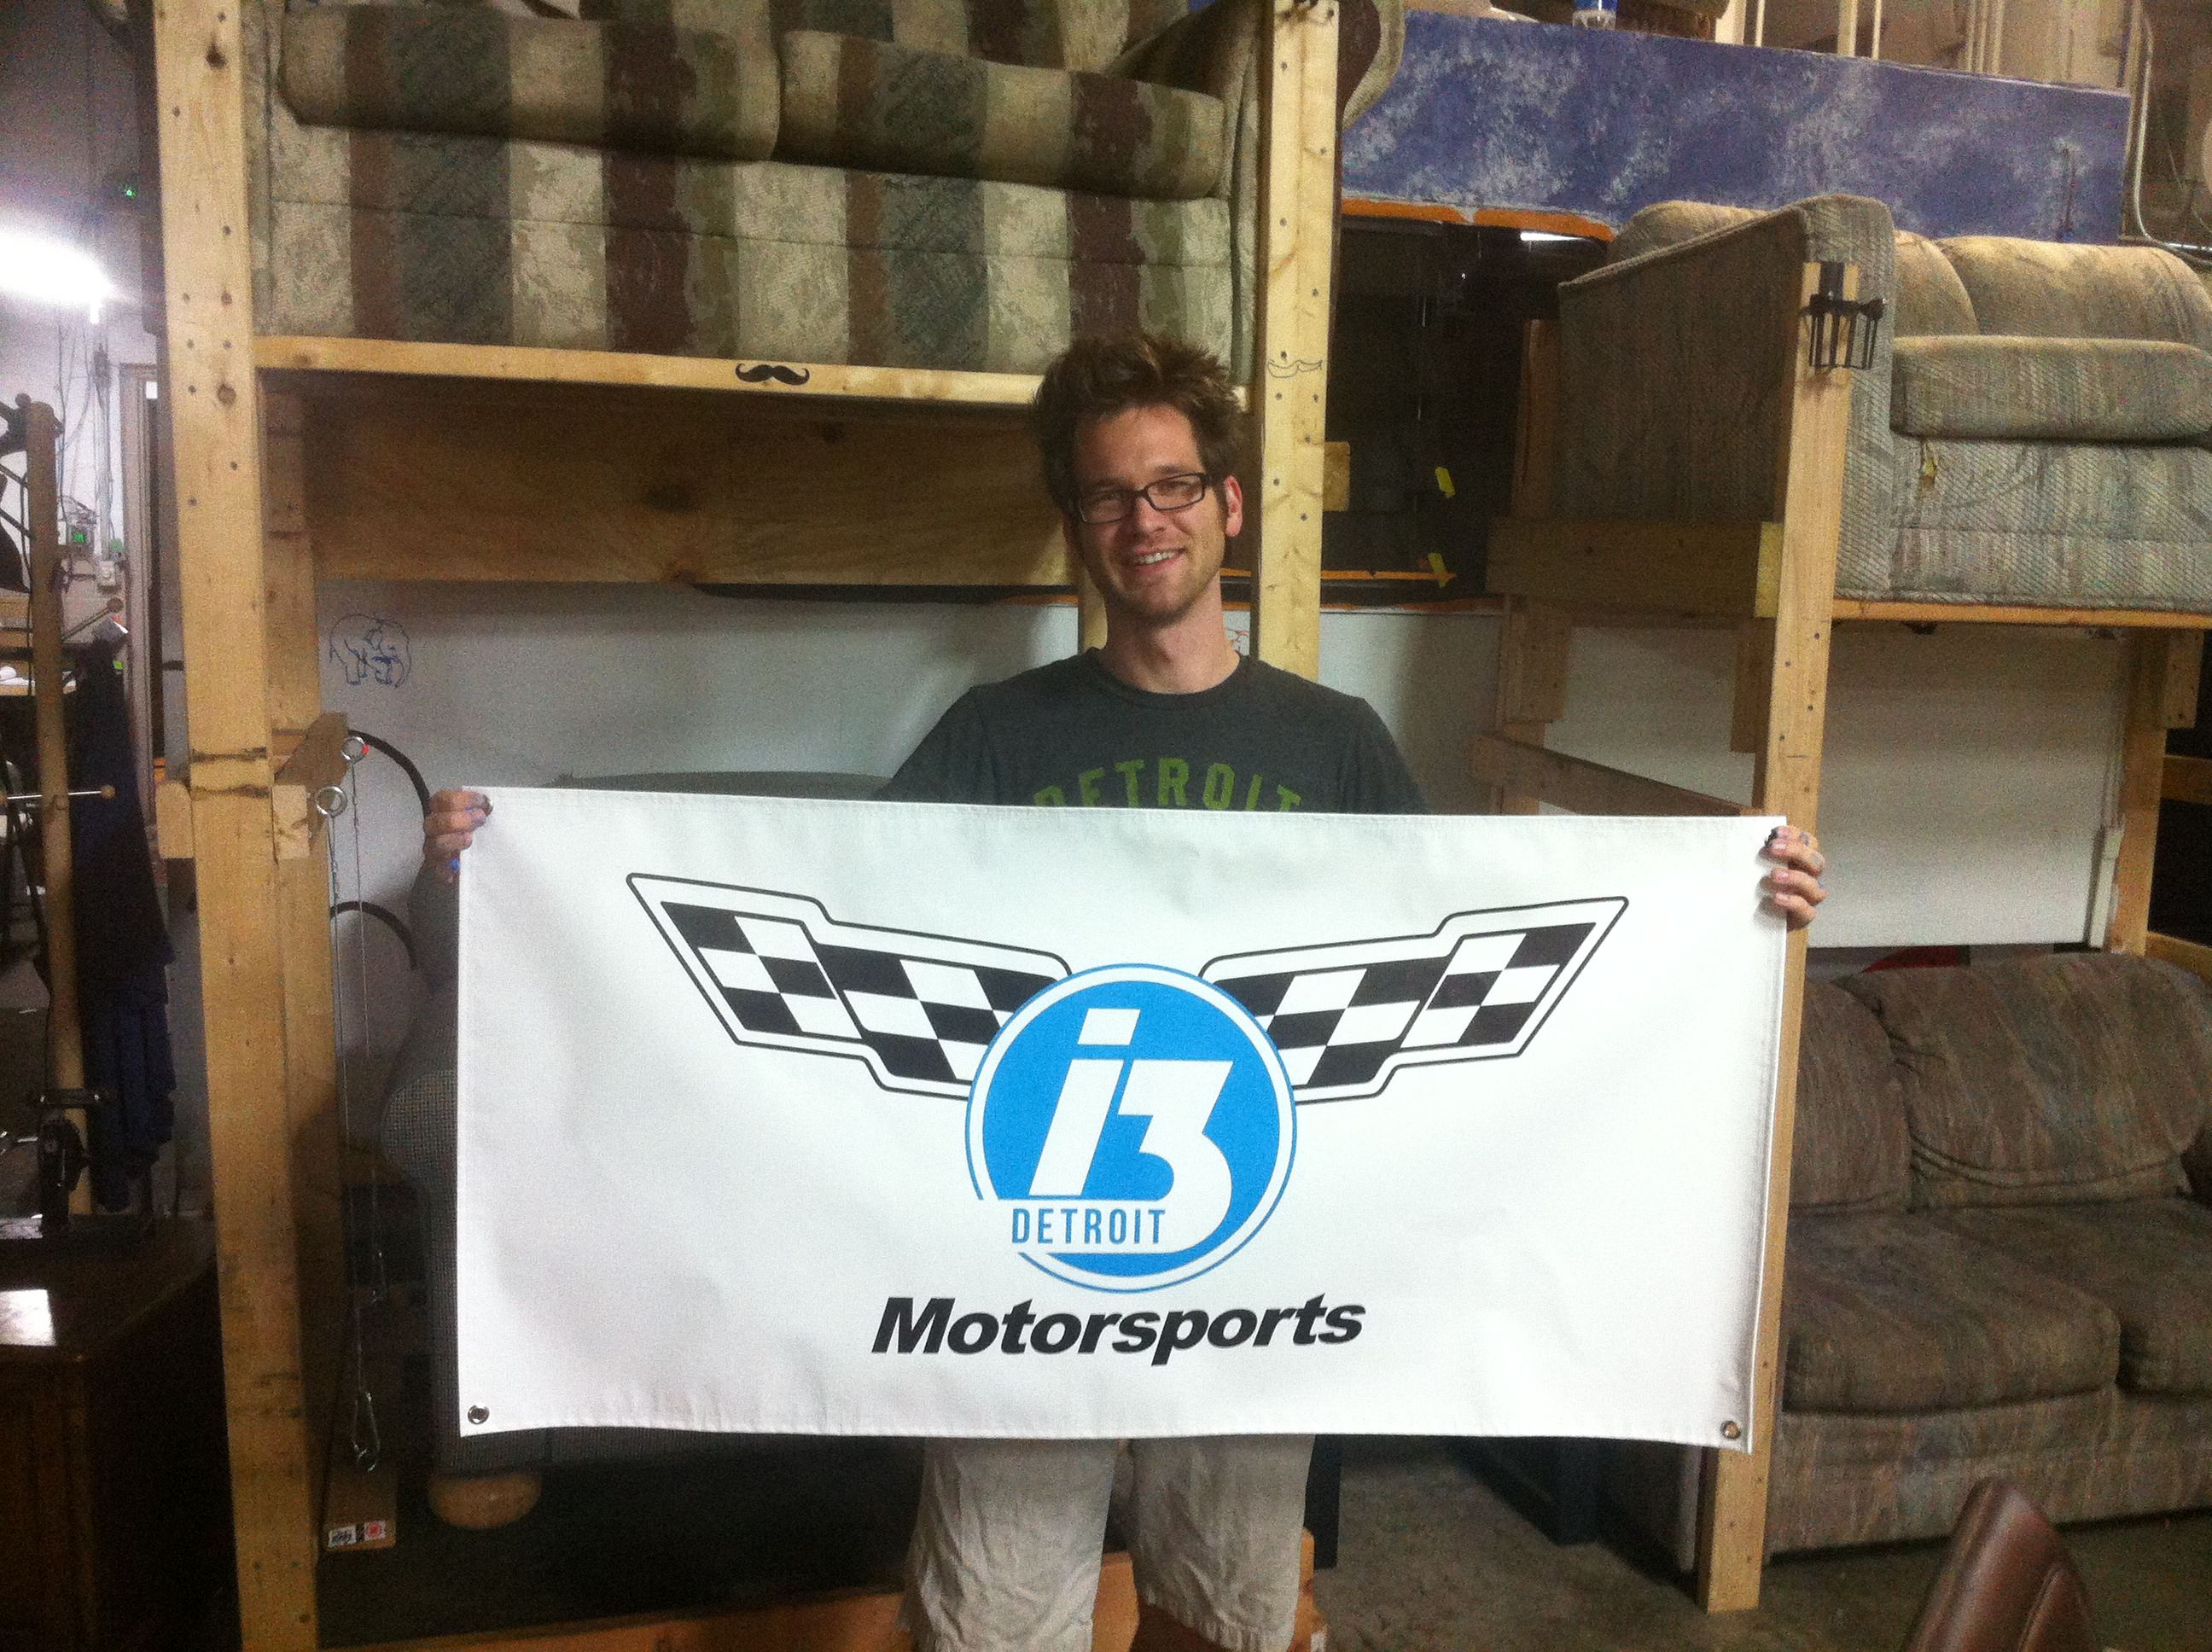 Signazon Donation for i3 Motorsports